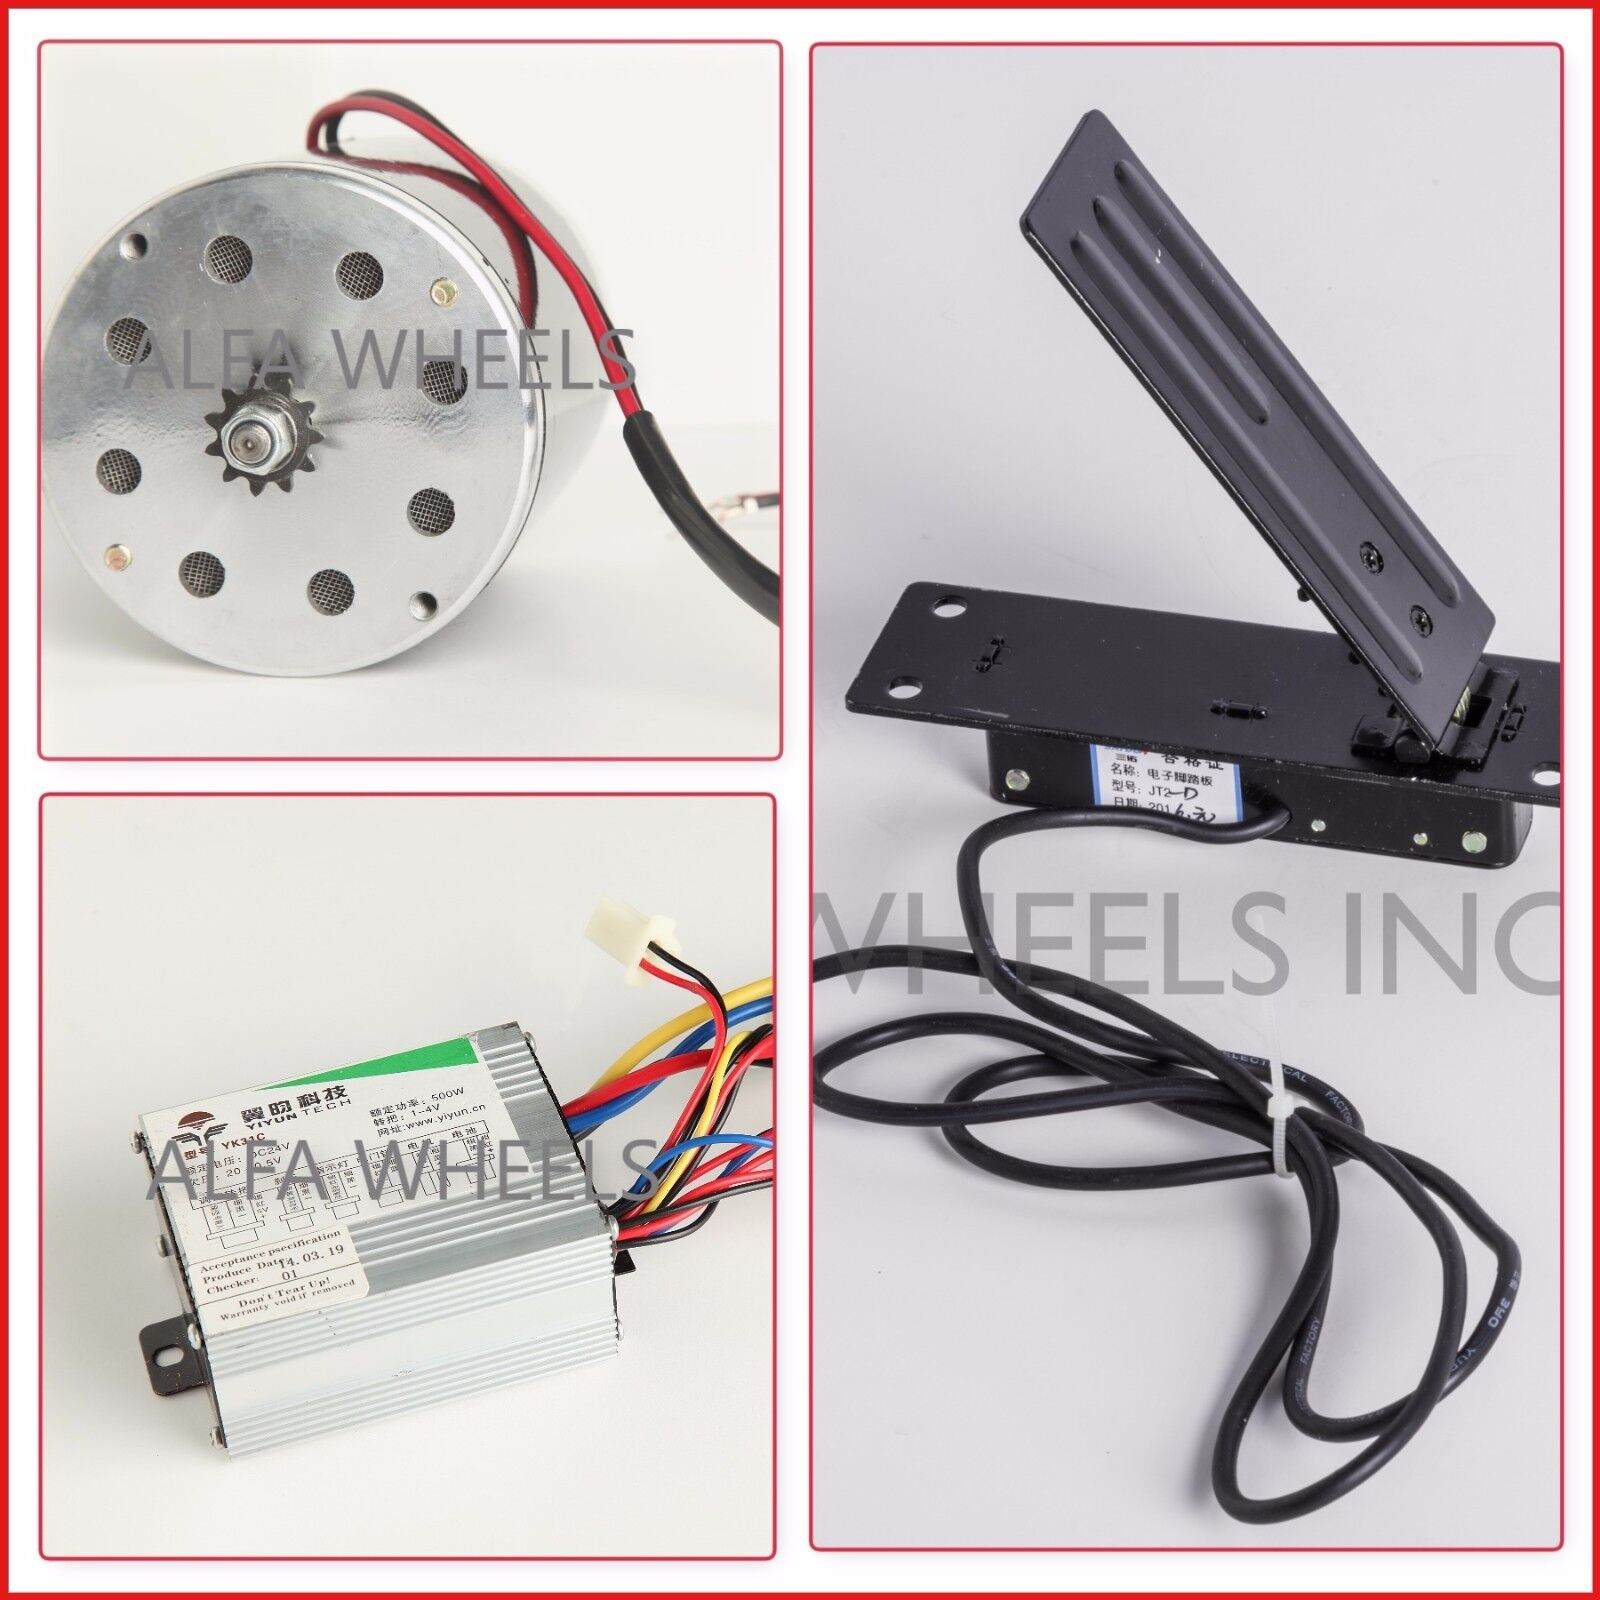 35 500 W 24 V DC electric 1020 Kart motor kit w speed control & Foot Throssotle